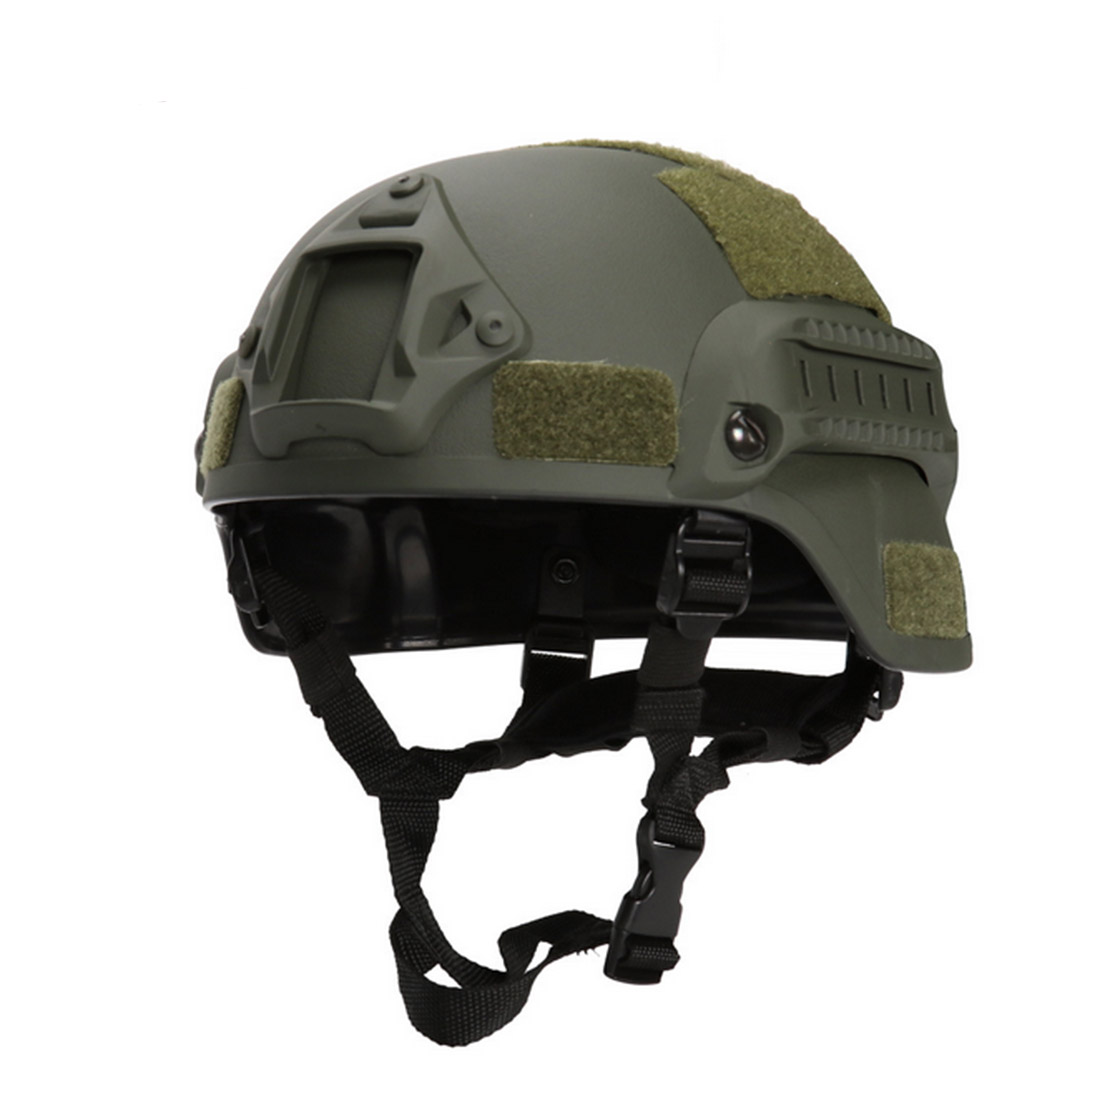 High Quality Protective Paintball Wargame Helmet Army Airsoft MH Tactical FAST Helmet With Safety Protective Goggle Lightweight